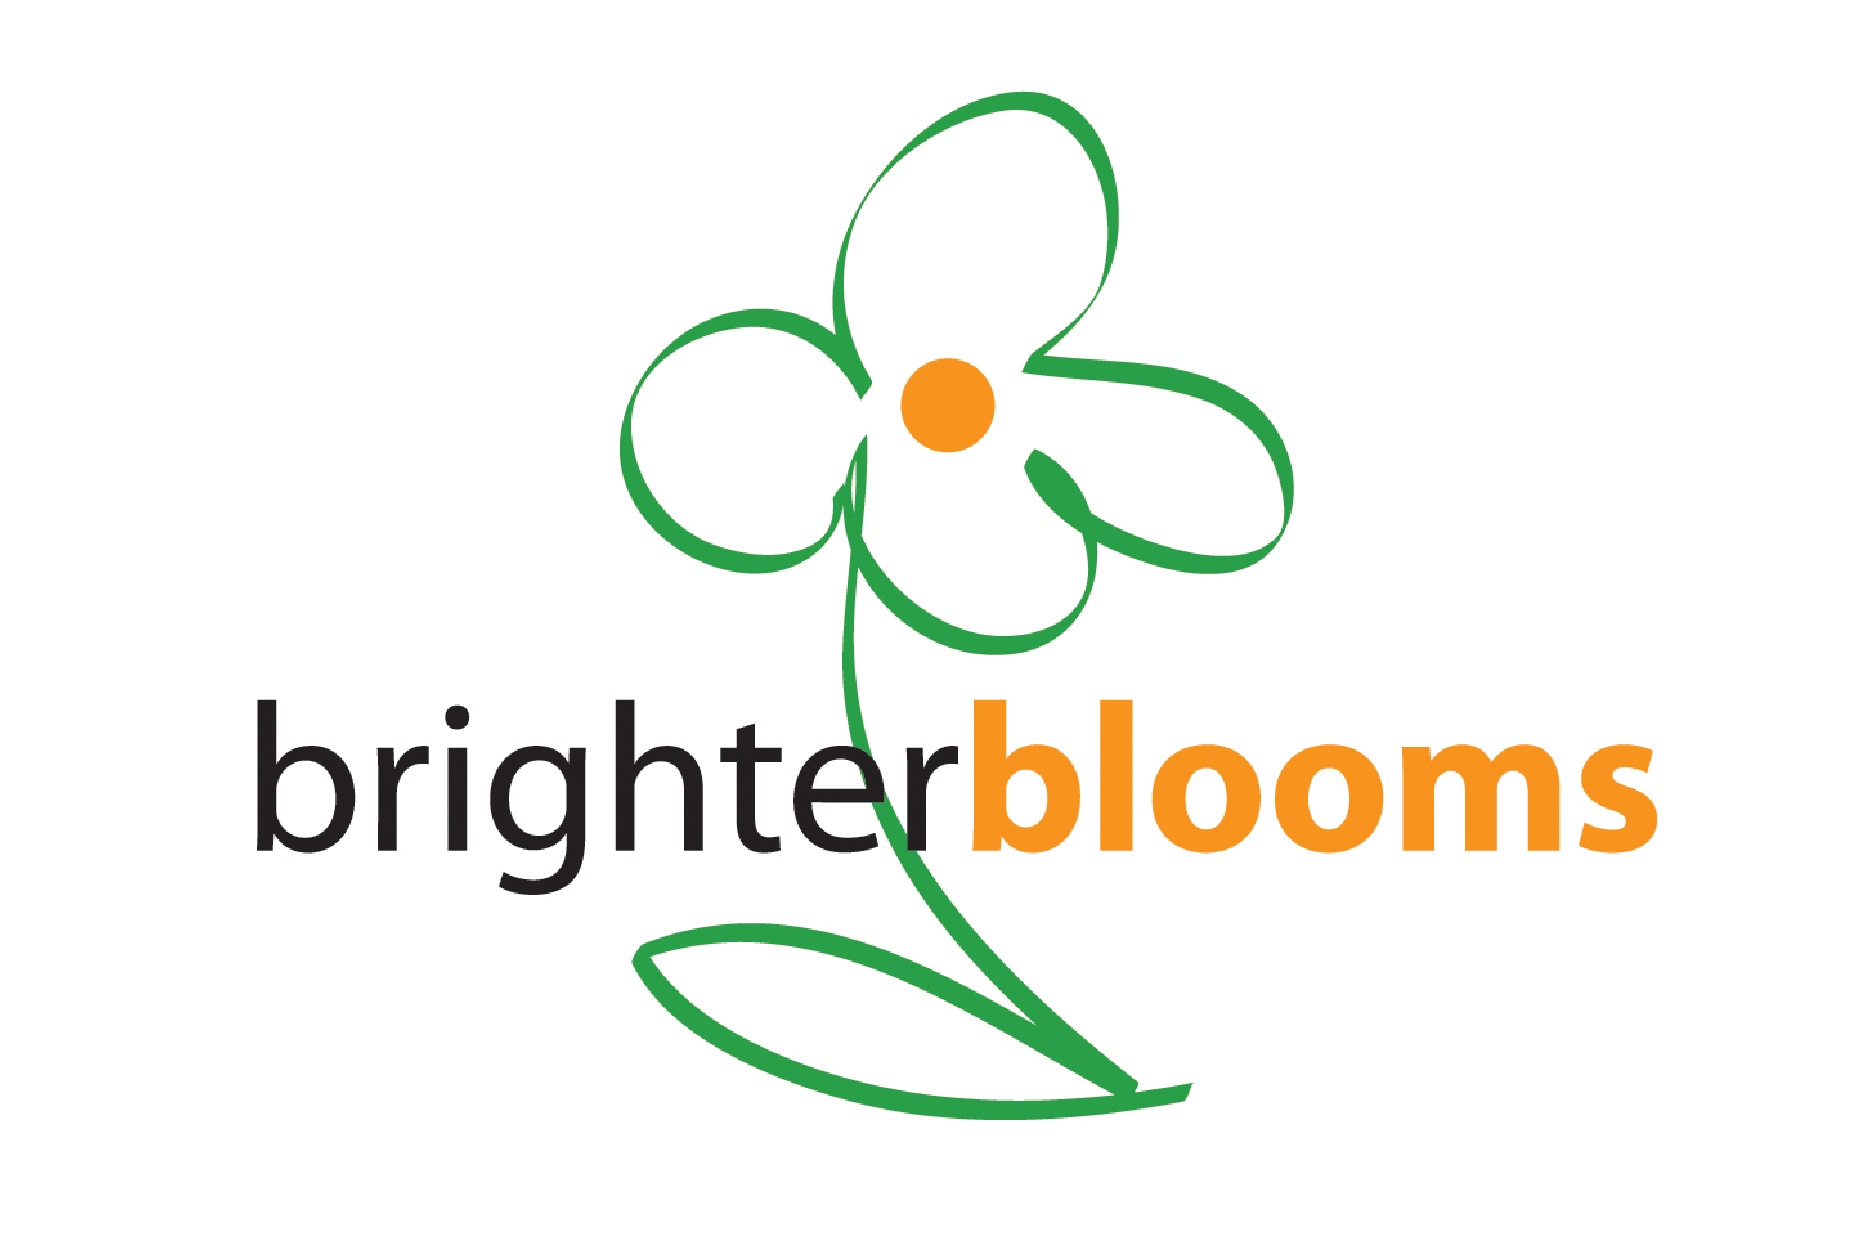 Brighter Blooms